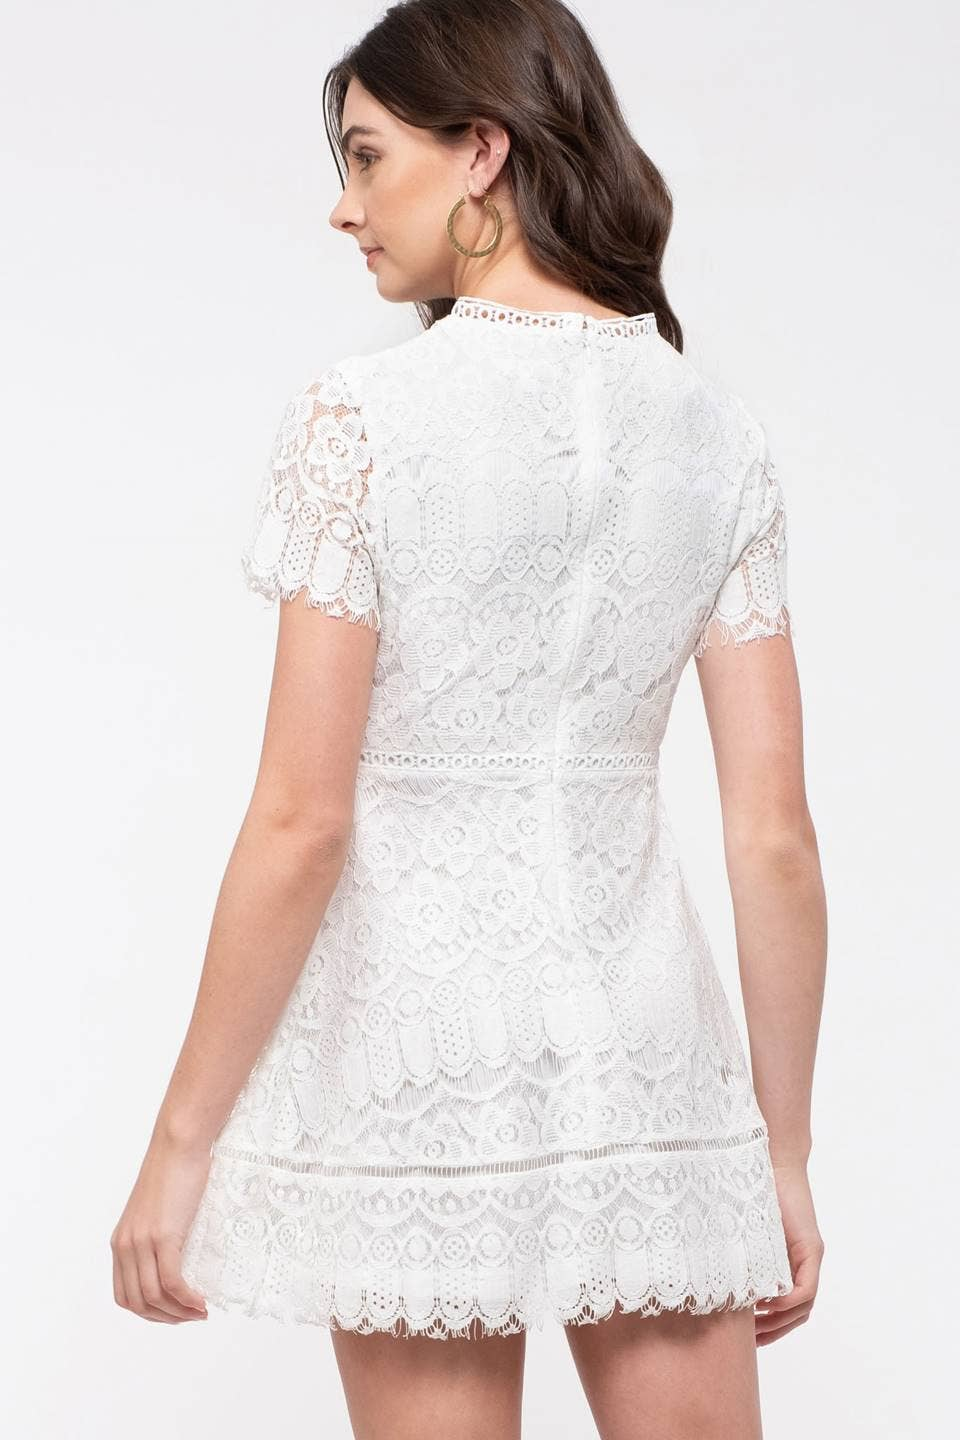 Alexandra Lace Dress-Dresses-Max & Riley-Max & Riley